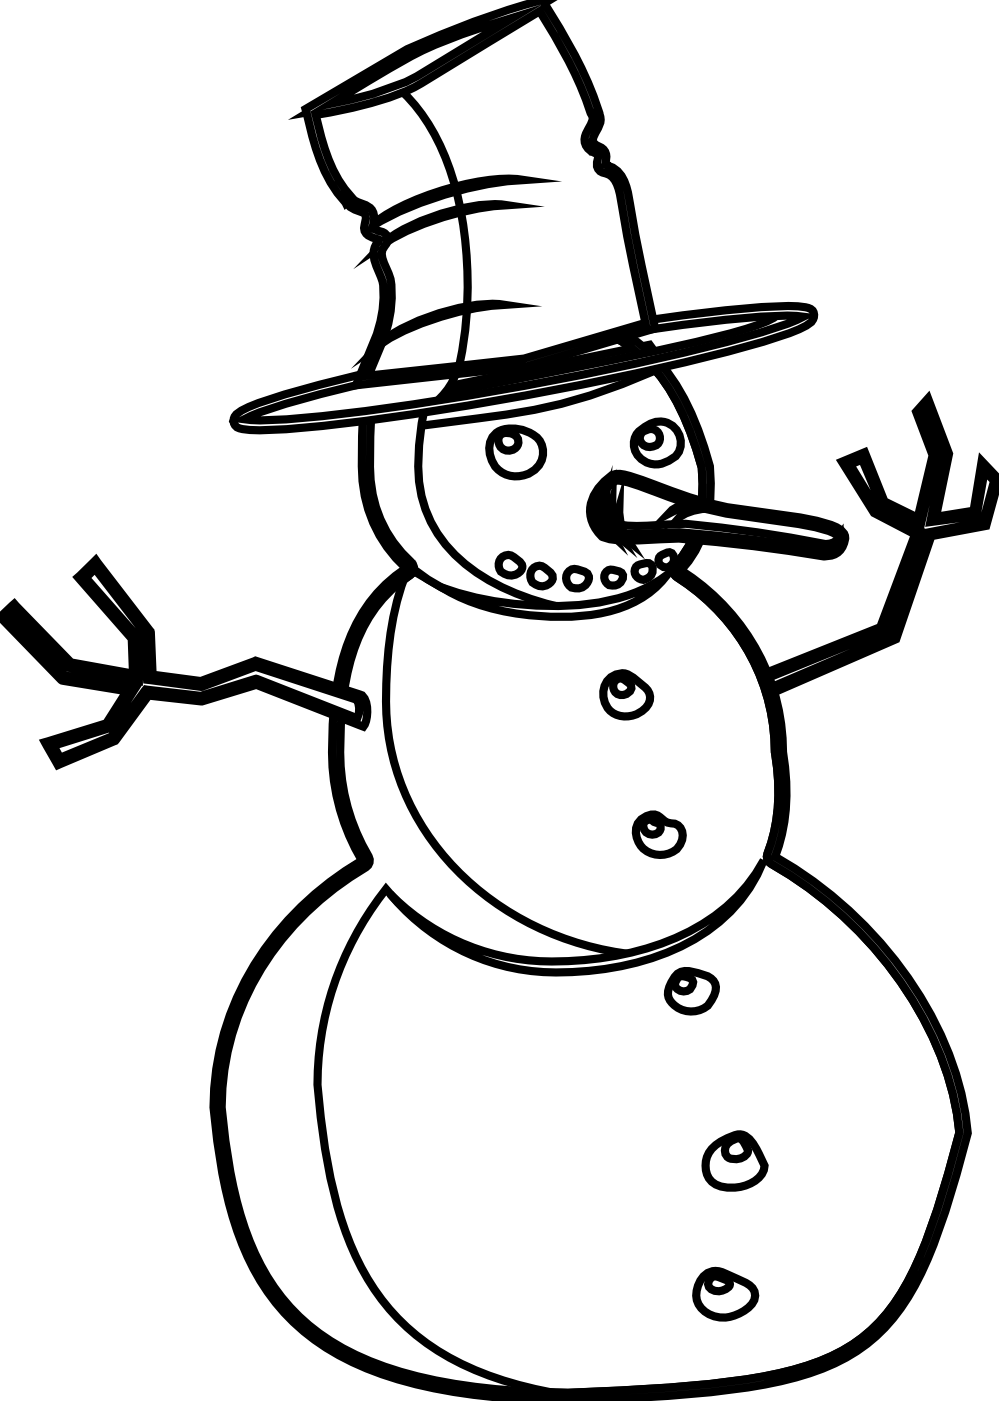 Merry Christmas Images Black And White | Free download on ... - Christmas Holiday Clip Art Black and White